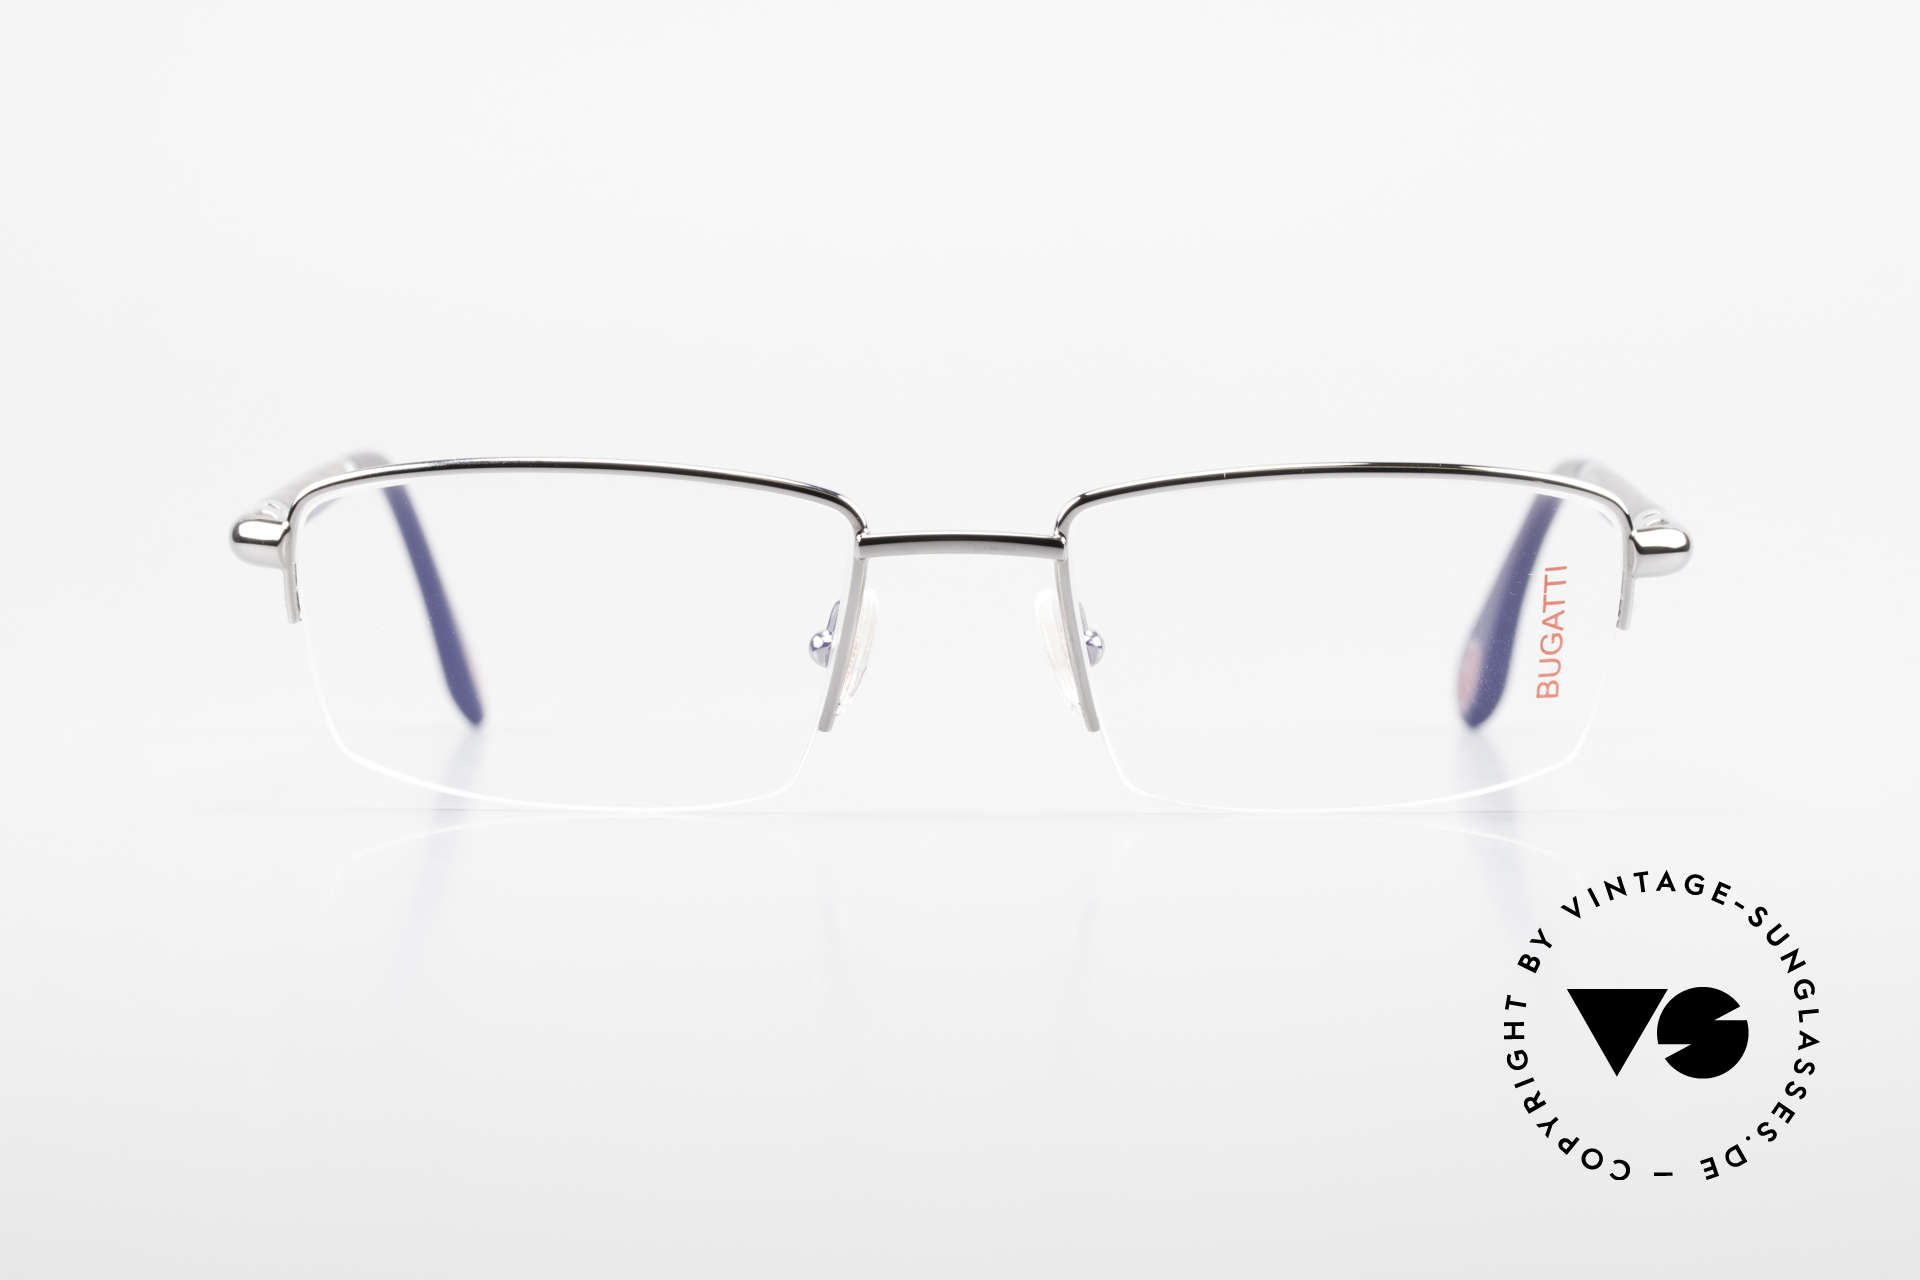 Bugatti 535 Horn Nylor Glasses Palladium, NYLOR metal frame (size 54/20) is Palladium-plated, Made for Men